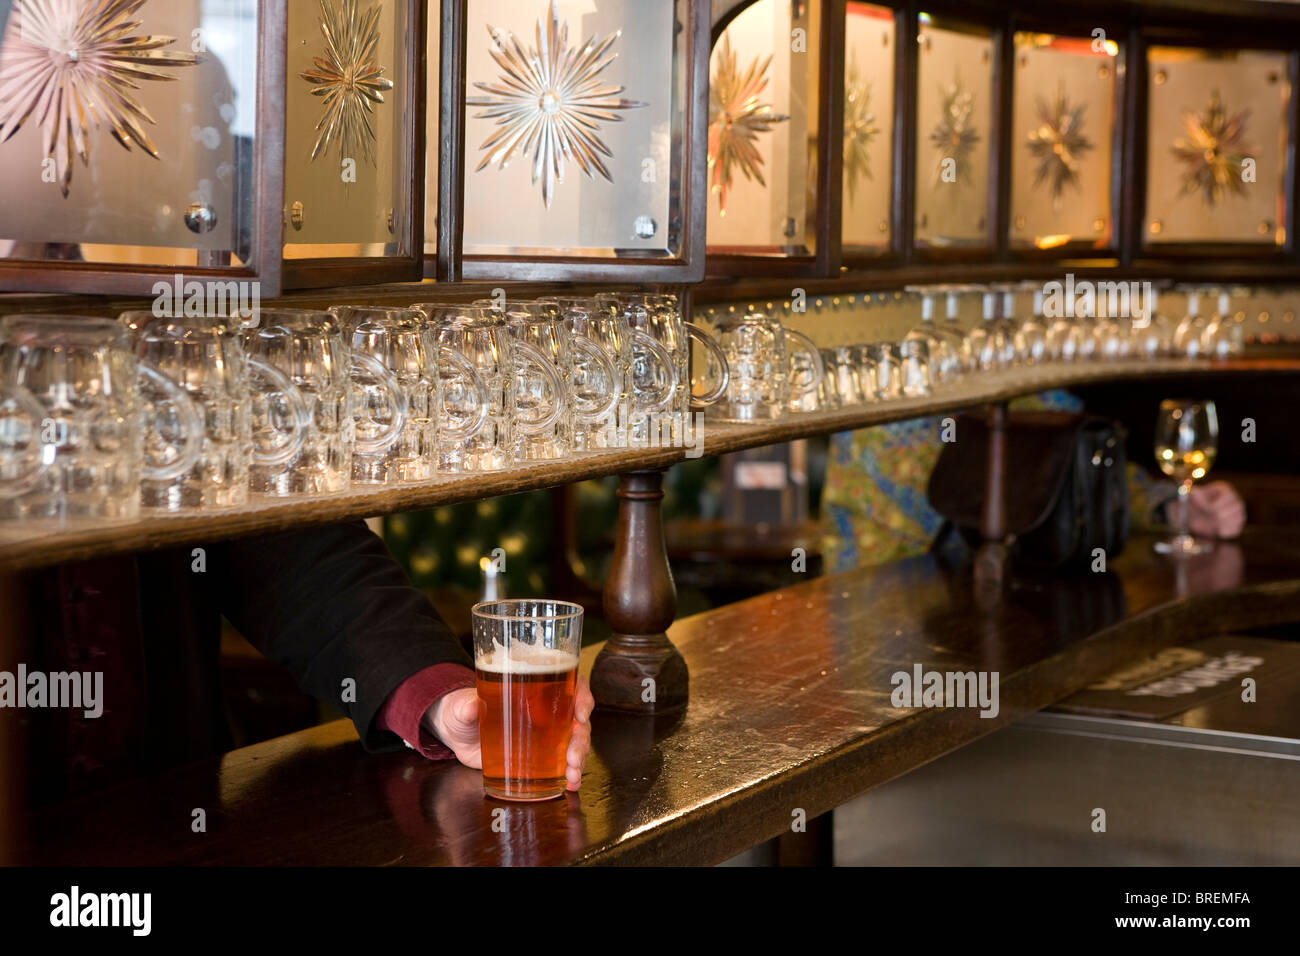 The Lamb a traditional pub in central London run byYoungs Britain's well known real ale brewer - Stock Image